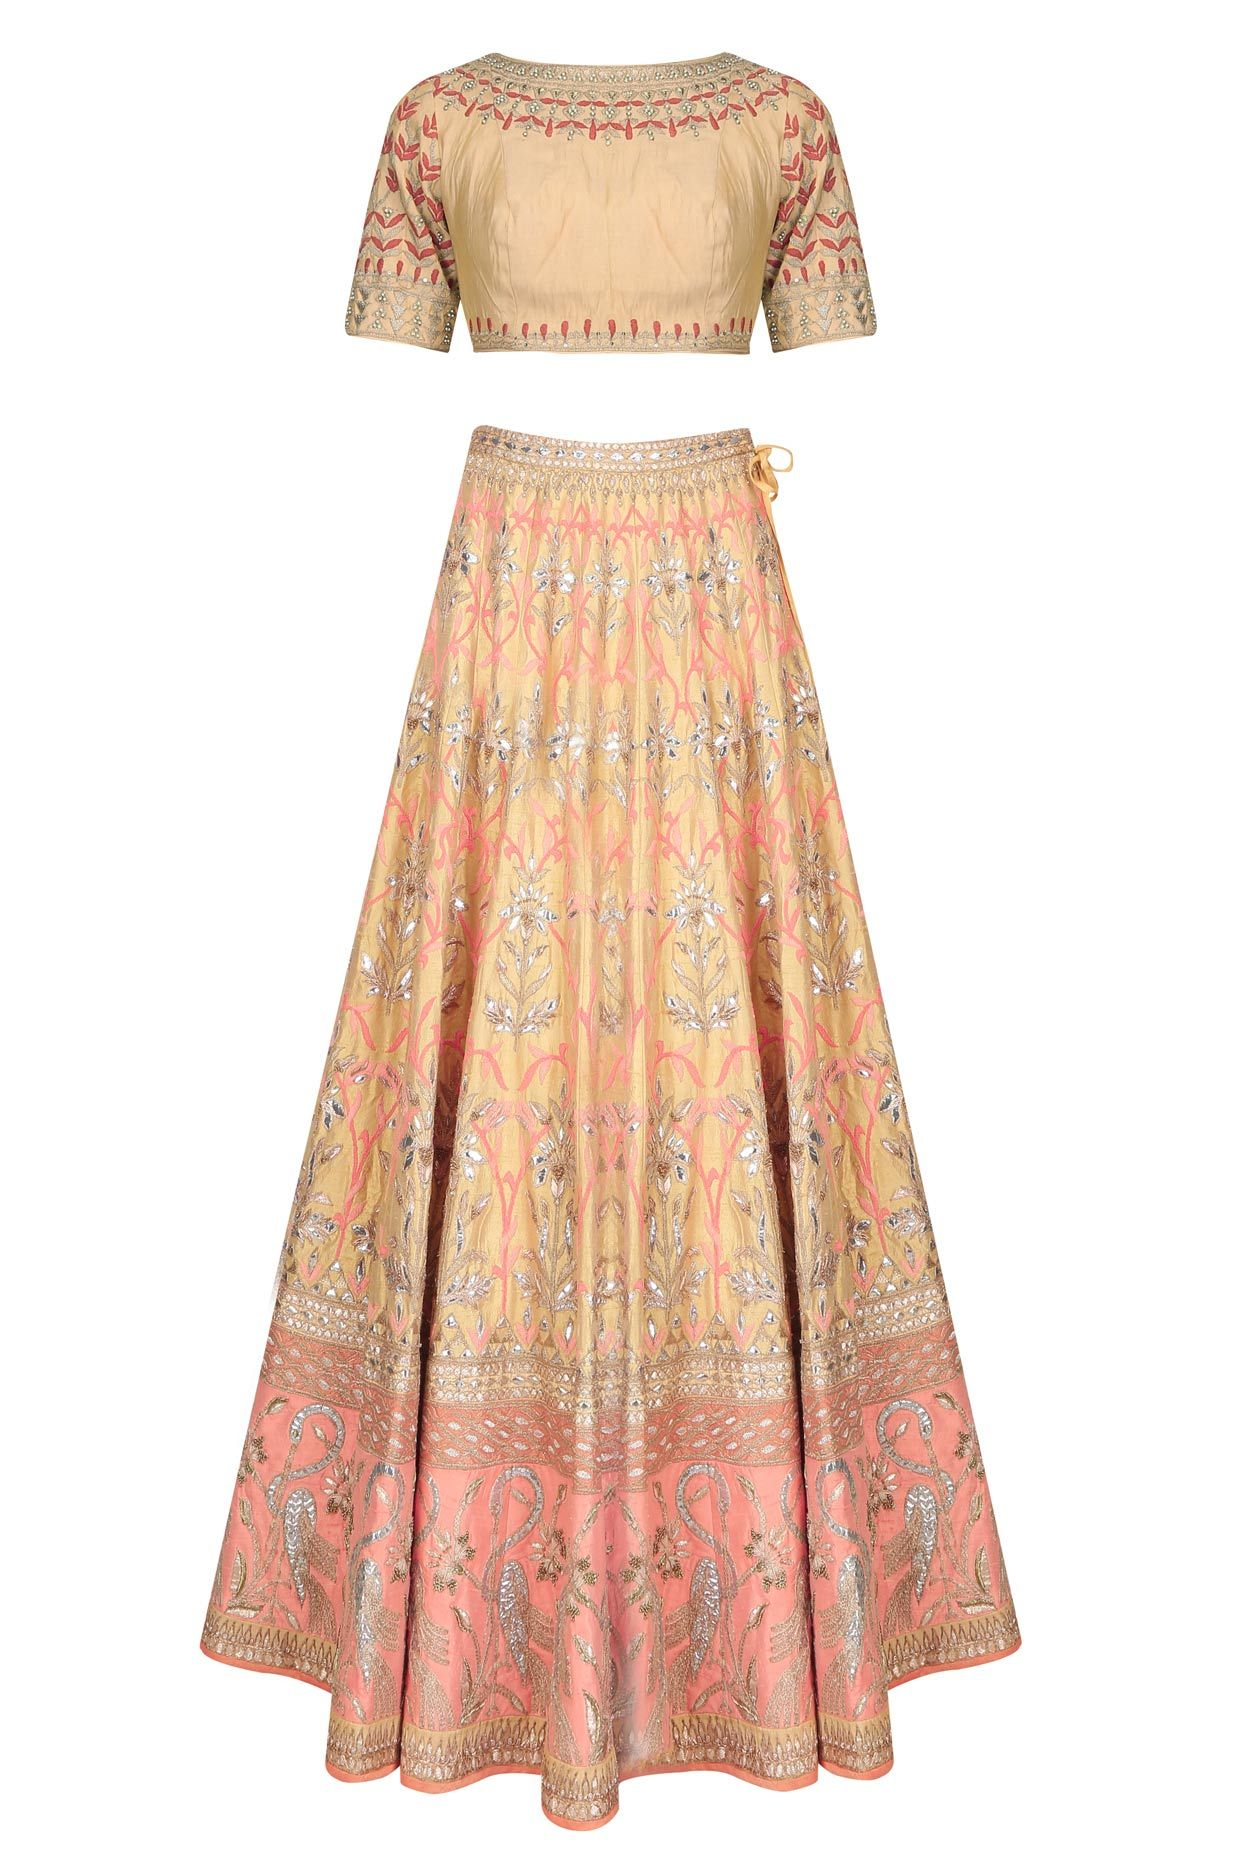 8cfe0a1c13 Gold and peach jaal embroidered 16 kali shaped lehenga set available only  at Pernia's Pop Up Shop.